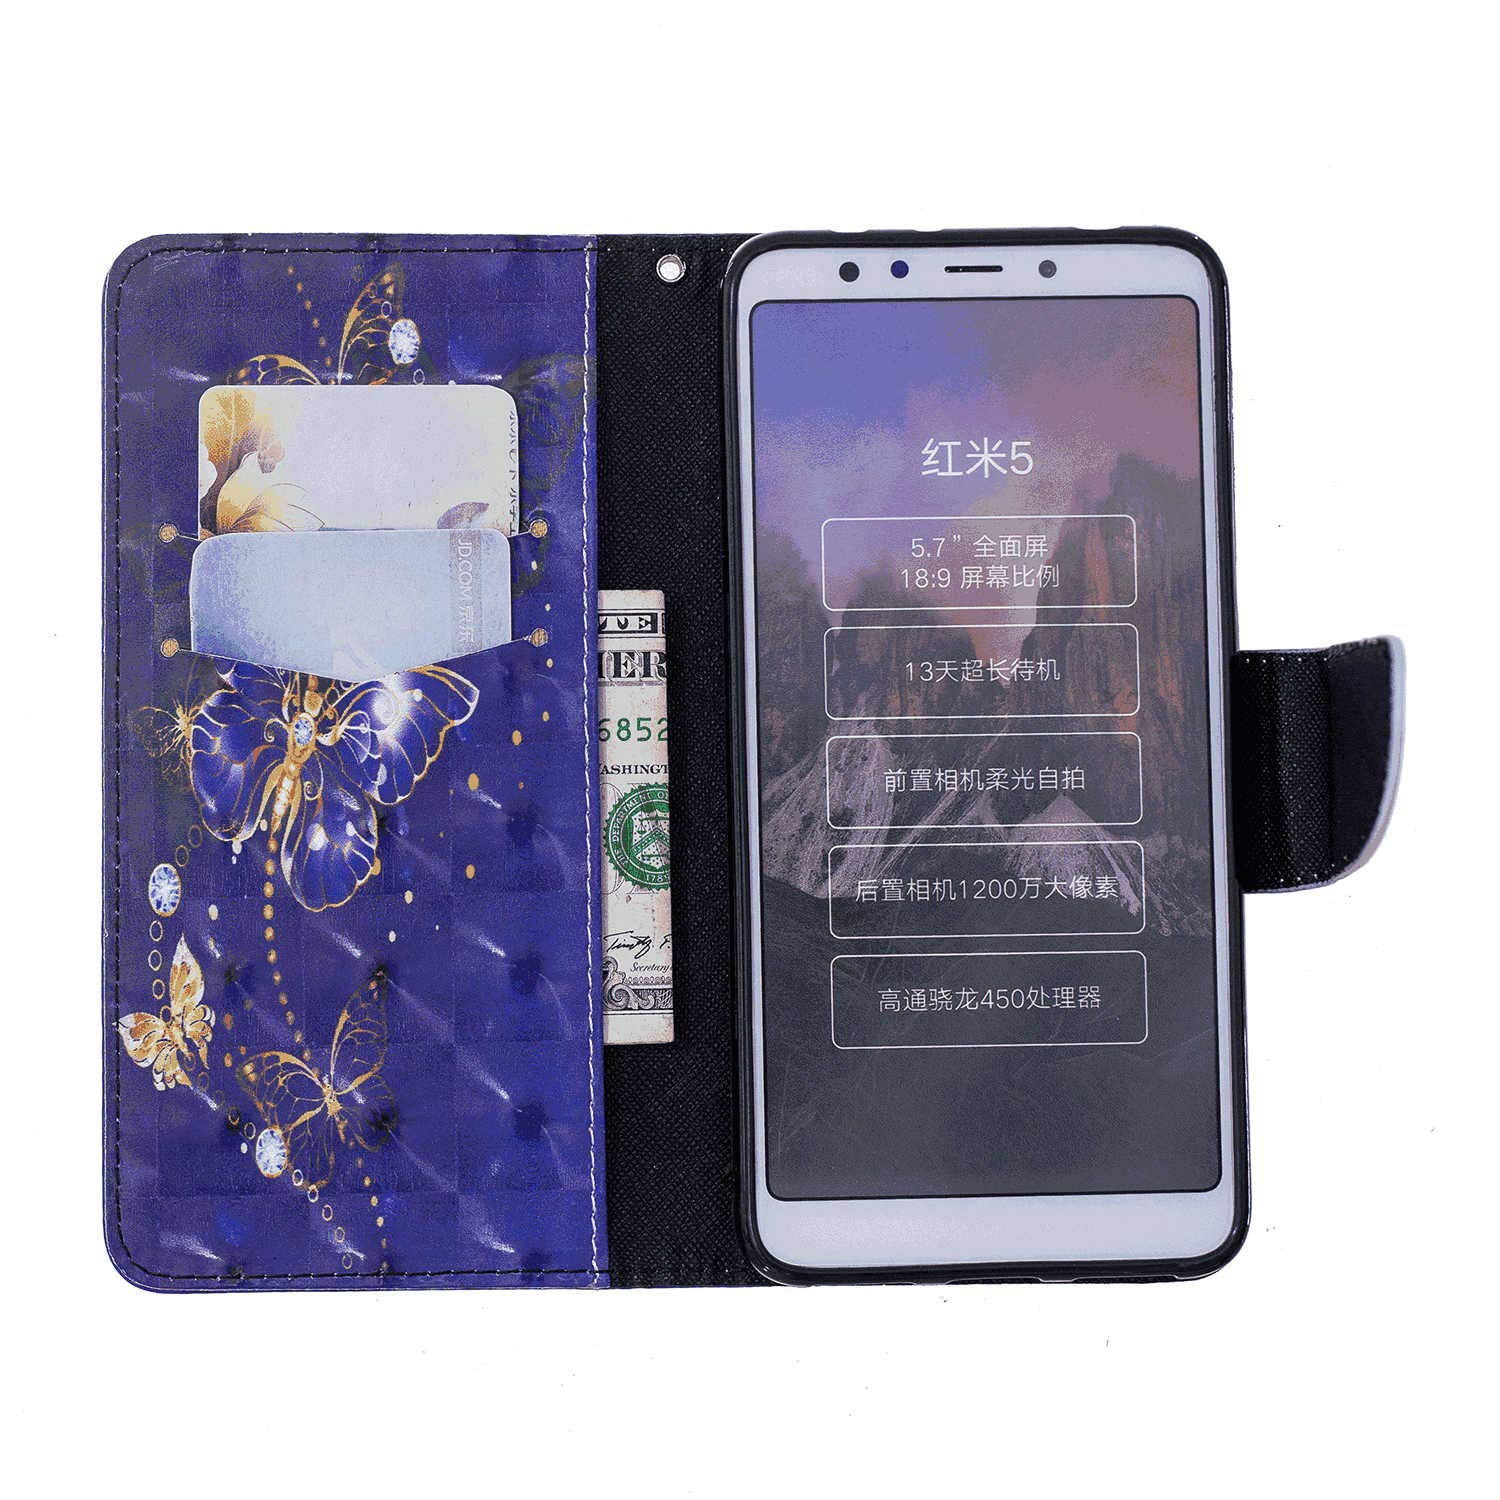 Huawei P20 LITE Flip Case Cover for Huawei P20 LITE Leather Mobile Phone case Kickstand Extra-Protective Business Card Holders with Free Waterproof-Bag Gripping